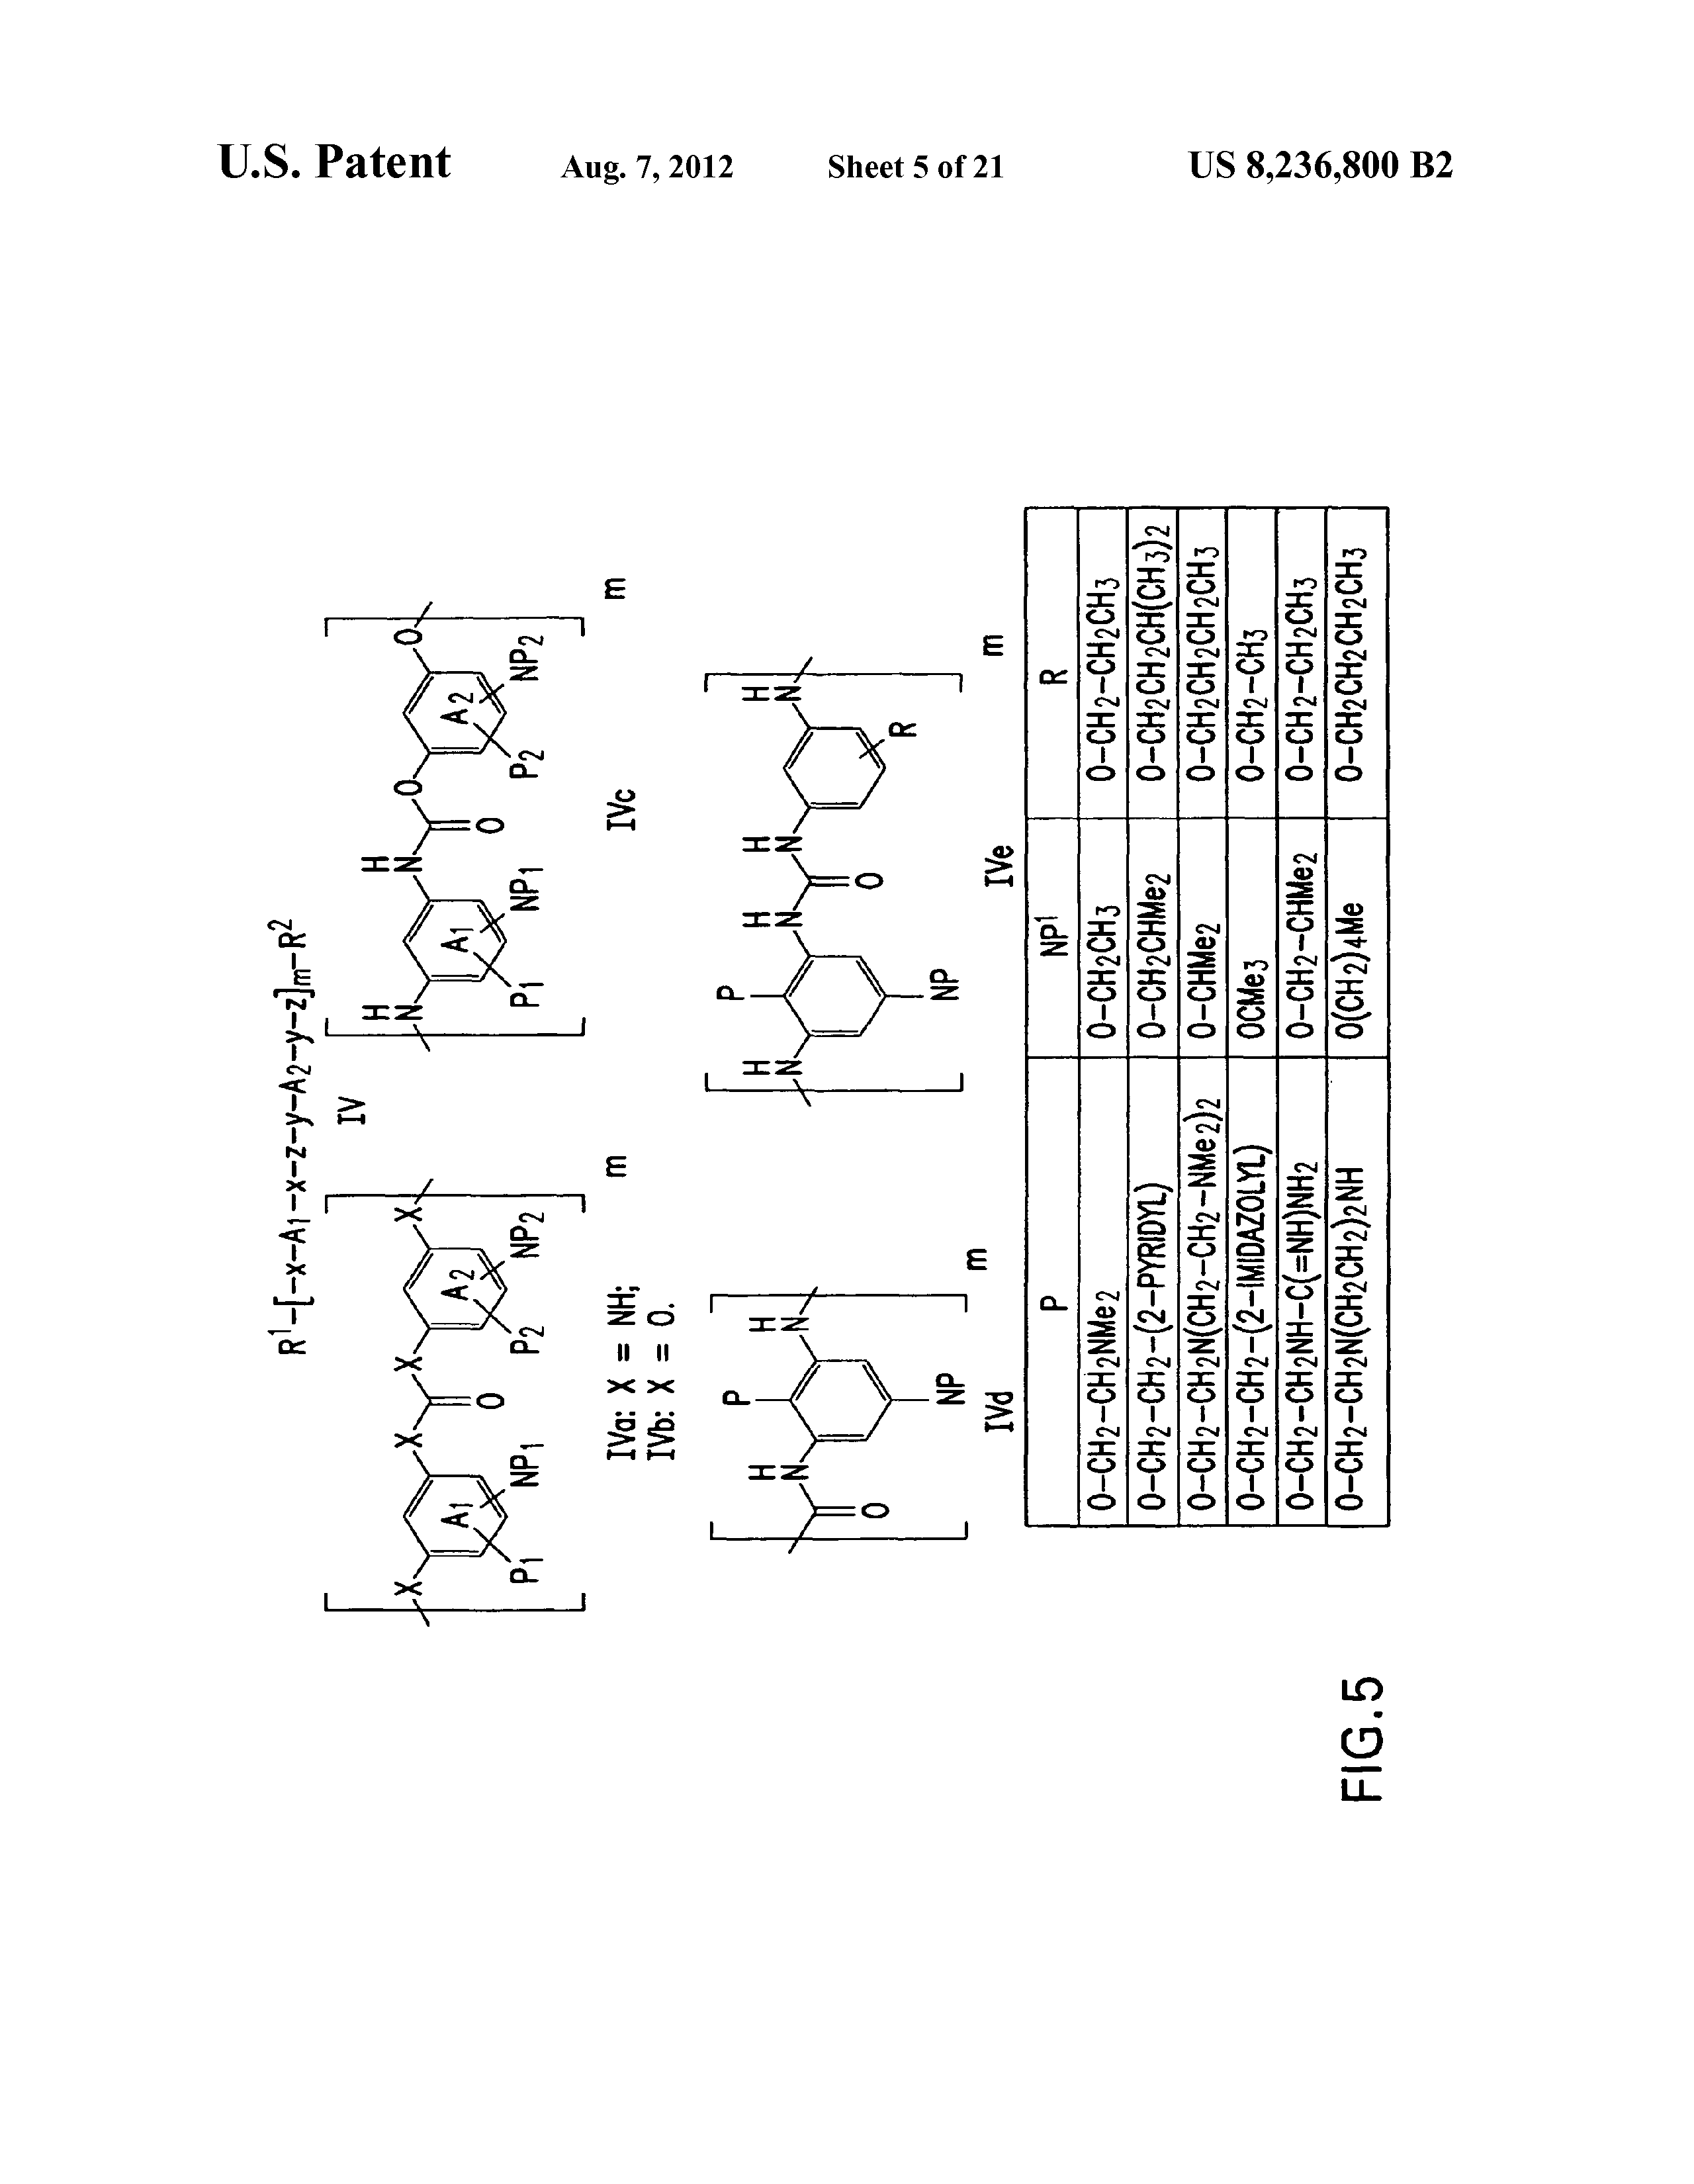 US 8236800 B2 - Facially Amphiphilic Polymers And Oligomers And Uses